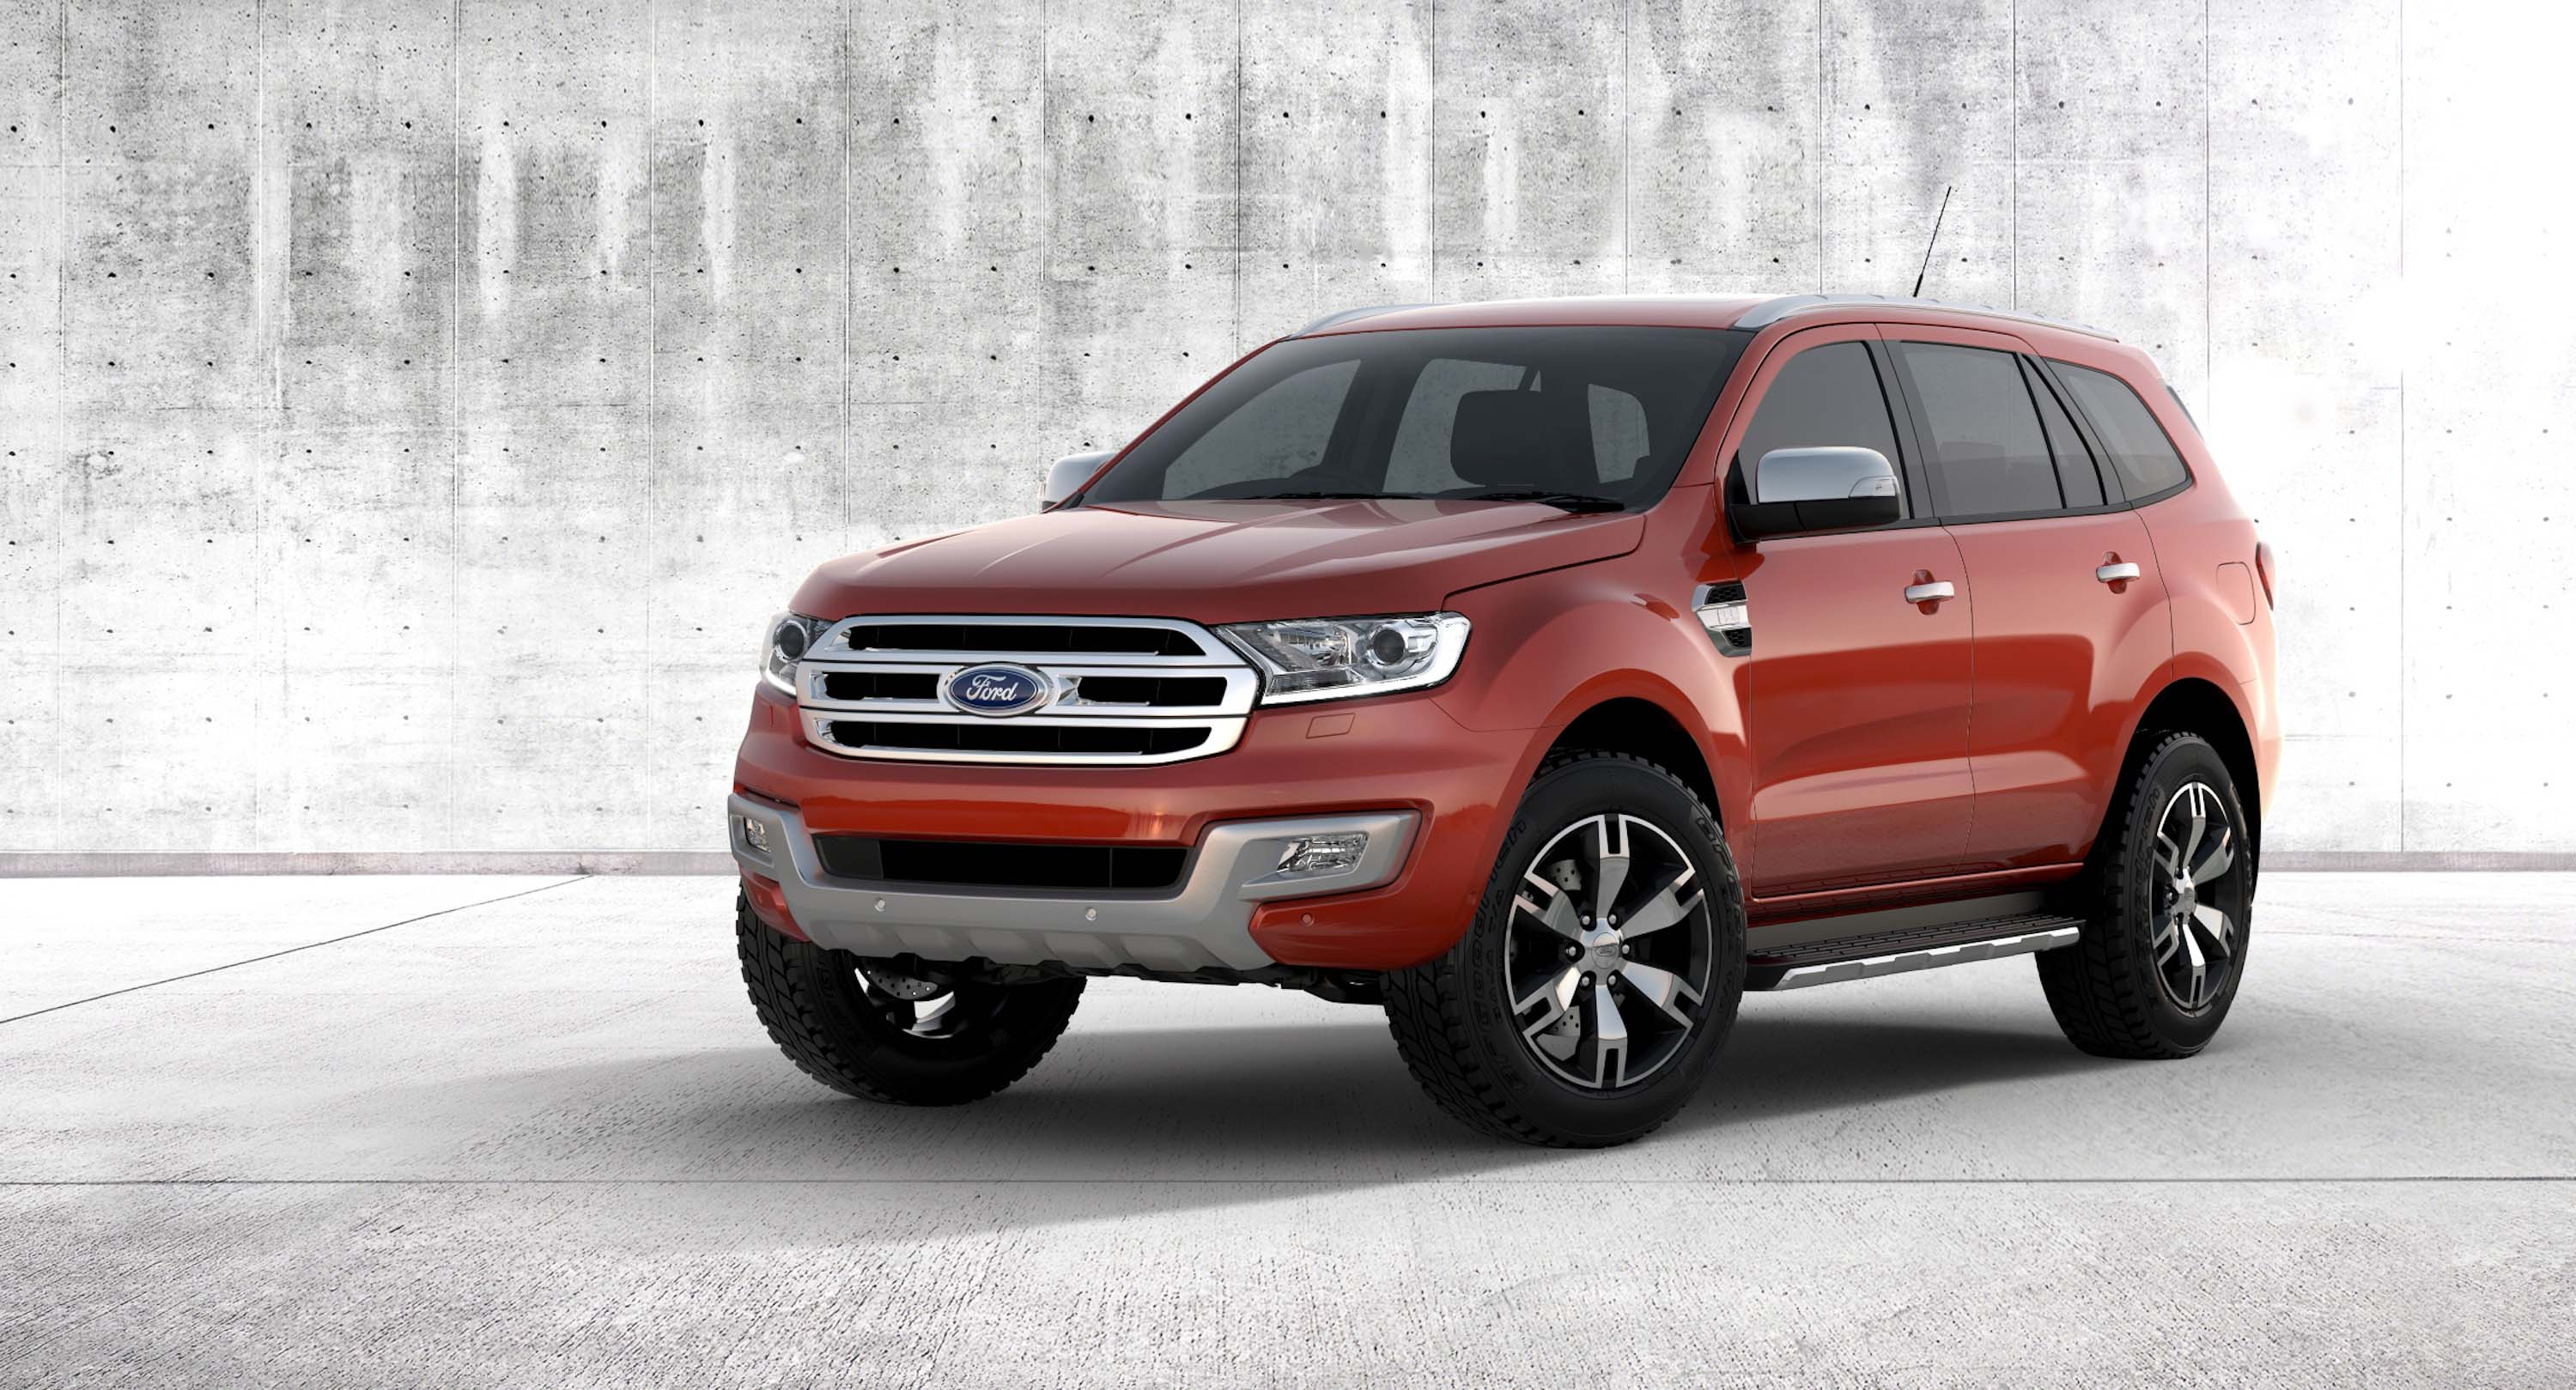 2015 t6 ford everest latest 7 seat ranger based suv debuts between the axles. Black Bedroom Furniture Sets. Home Design Ideas